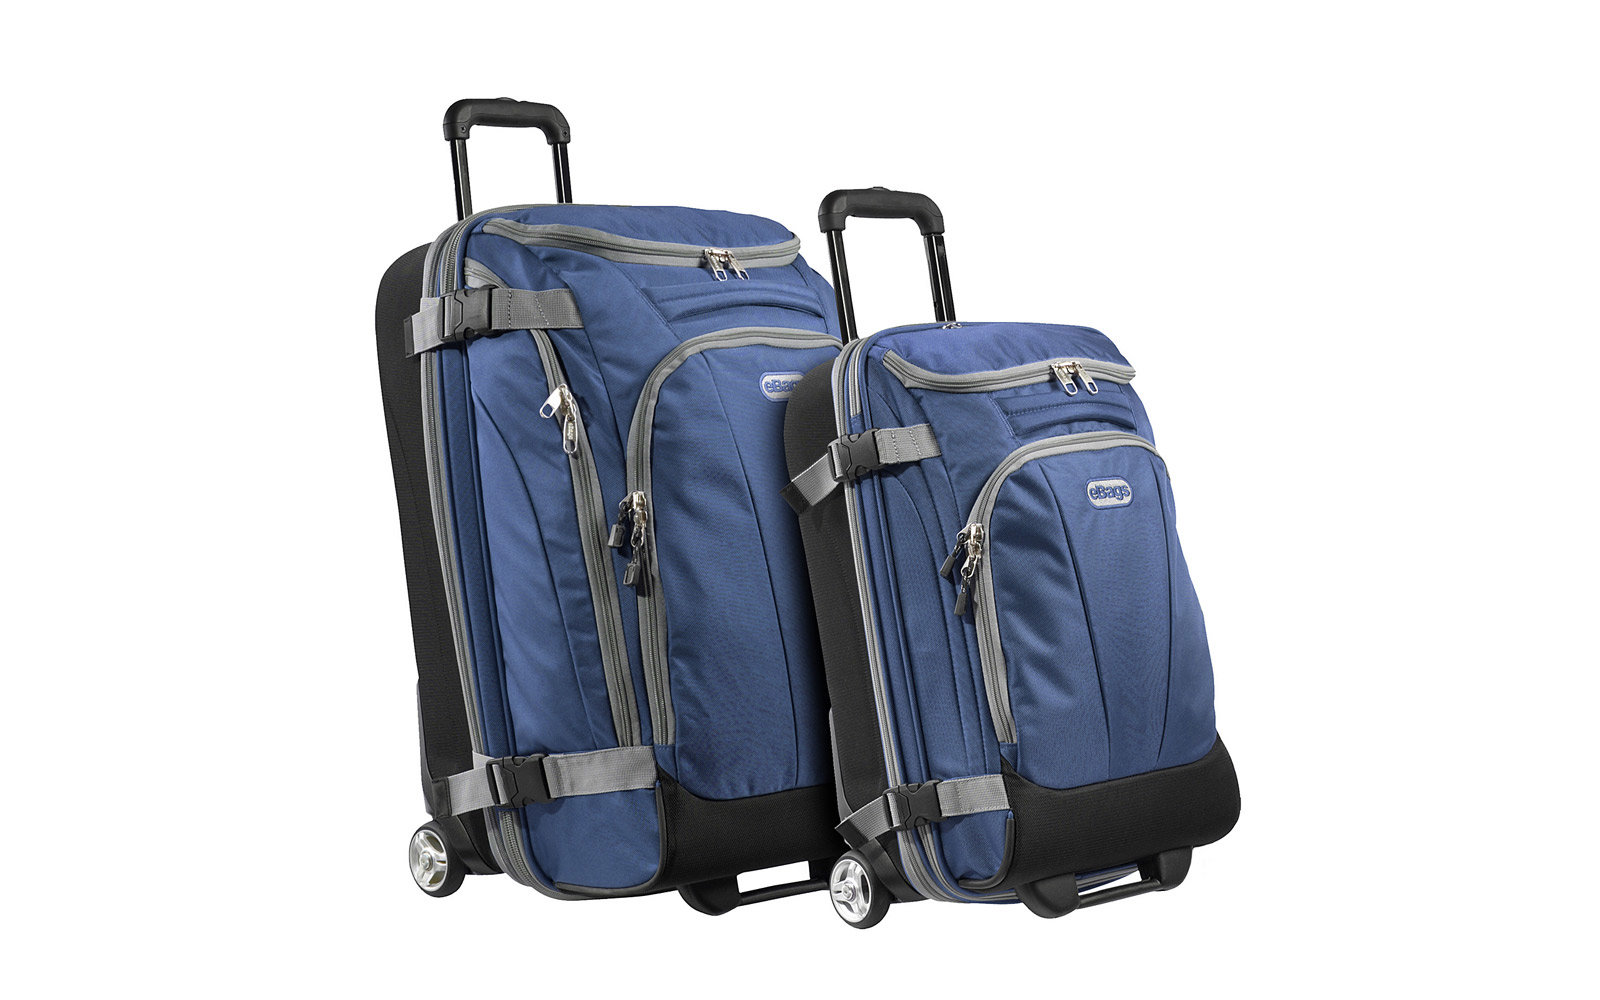 Ebags 2 Piece Value Luggage Set